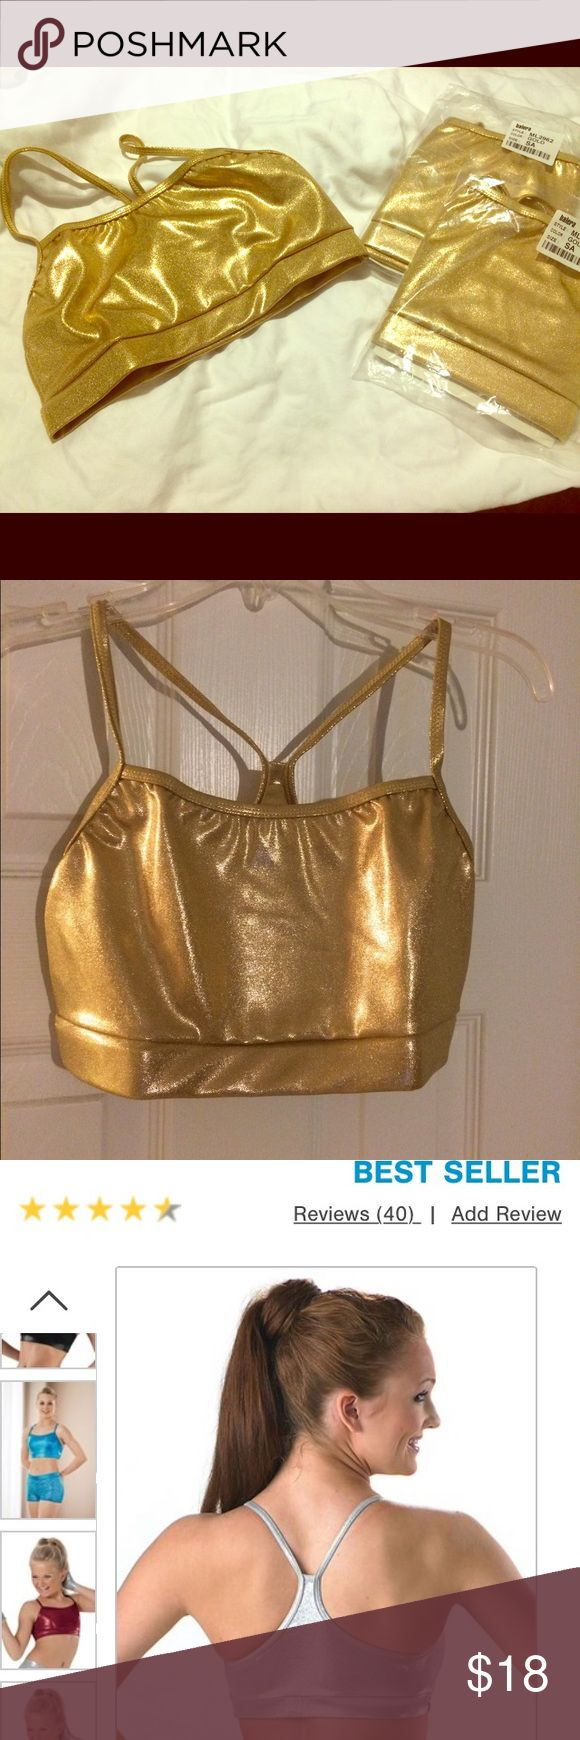 NEW Metallic Gold Sports Bra (Dance Attire). Beautiful, metallic gold dance sport bras. NWT. Never worn. Size Small. Great for dance team performance, gymnastics, cheer,  exercise or Halloween costume. Tops